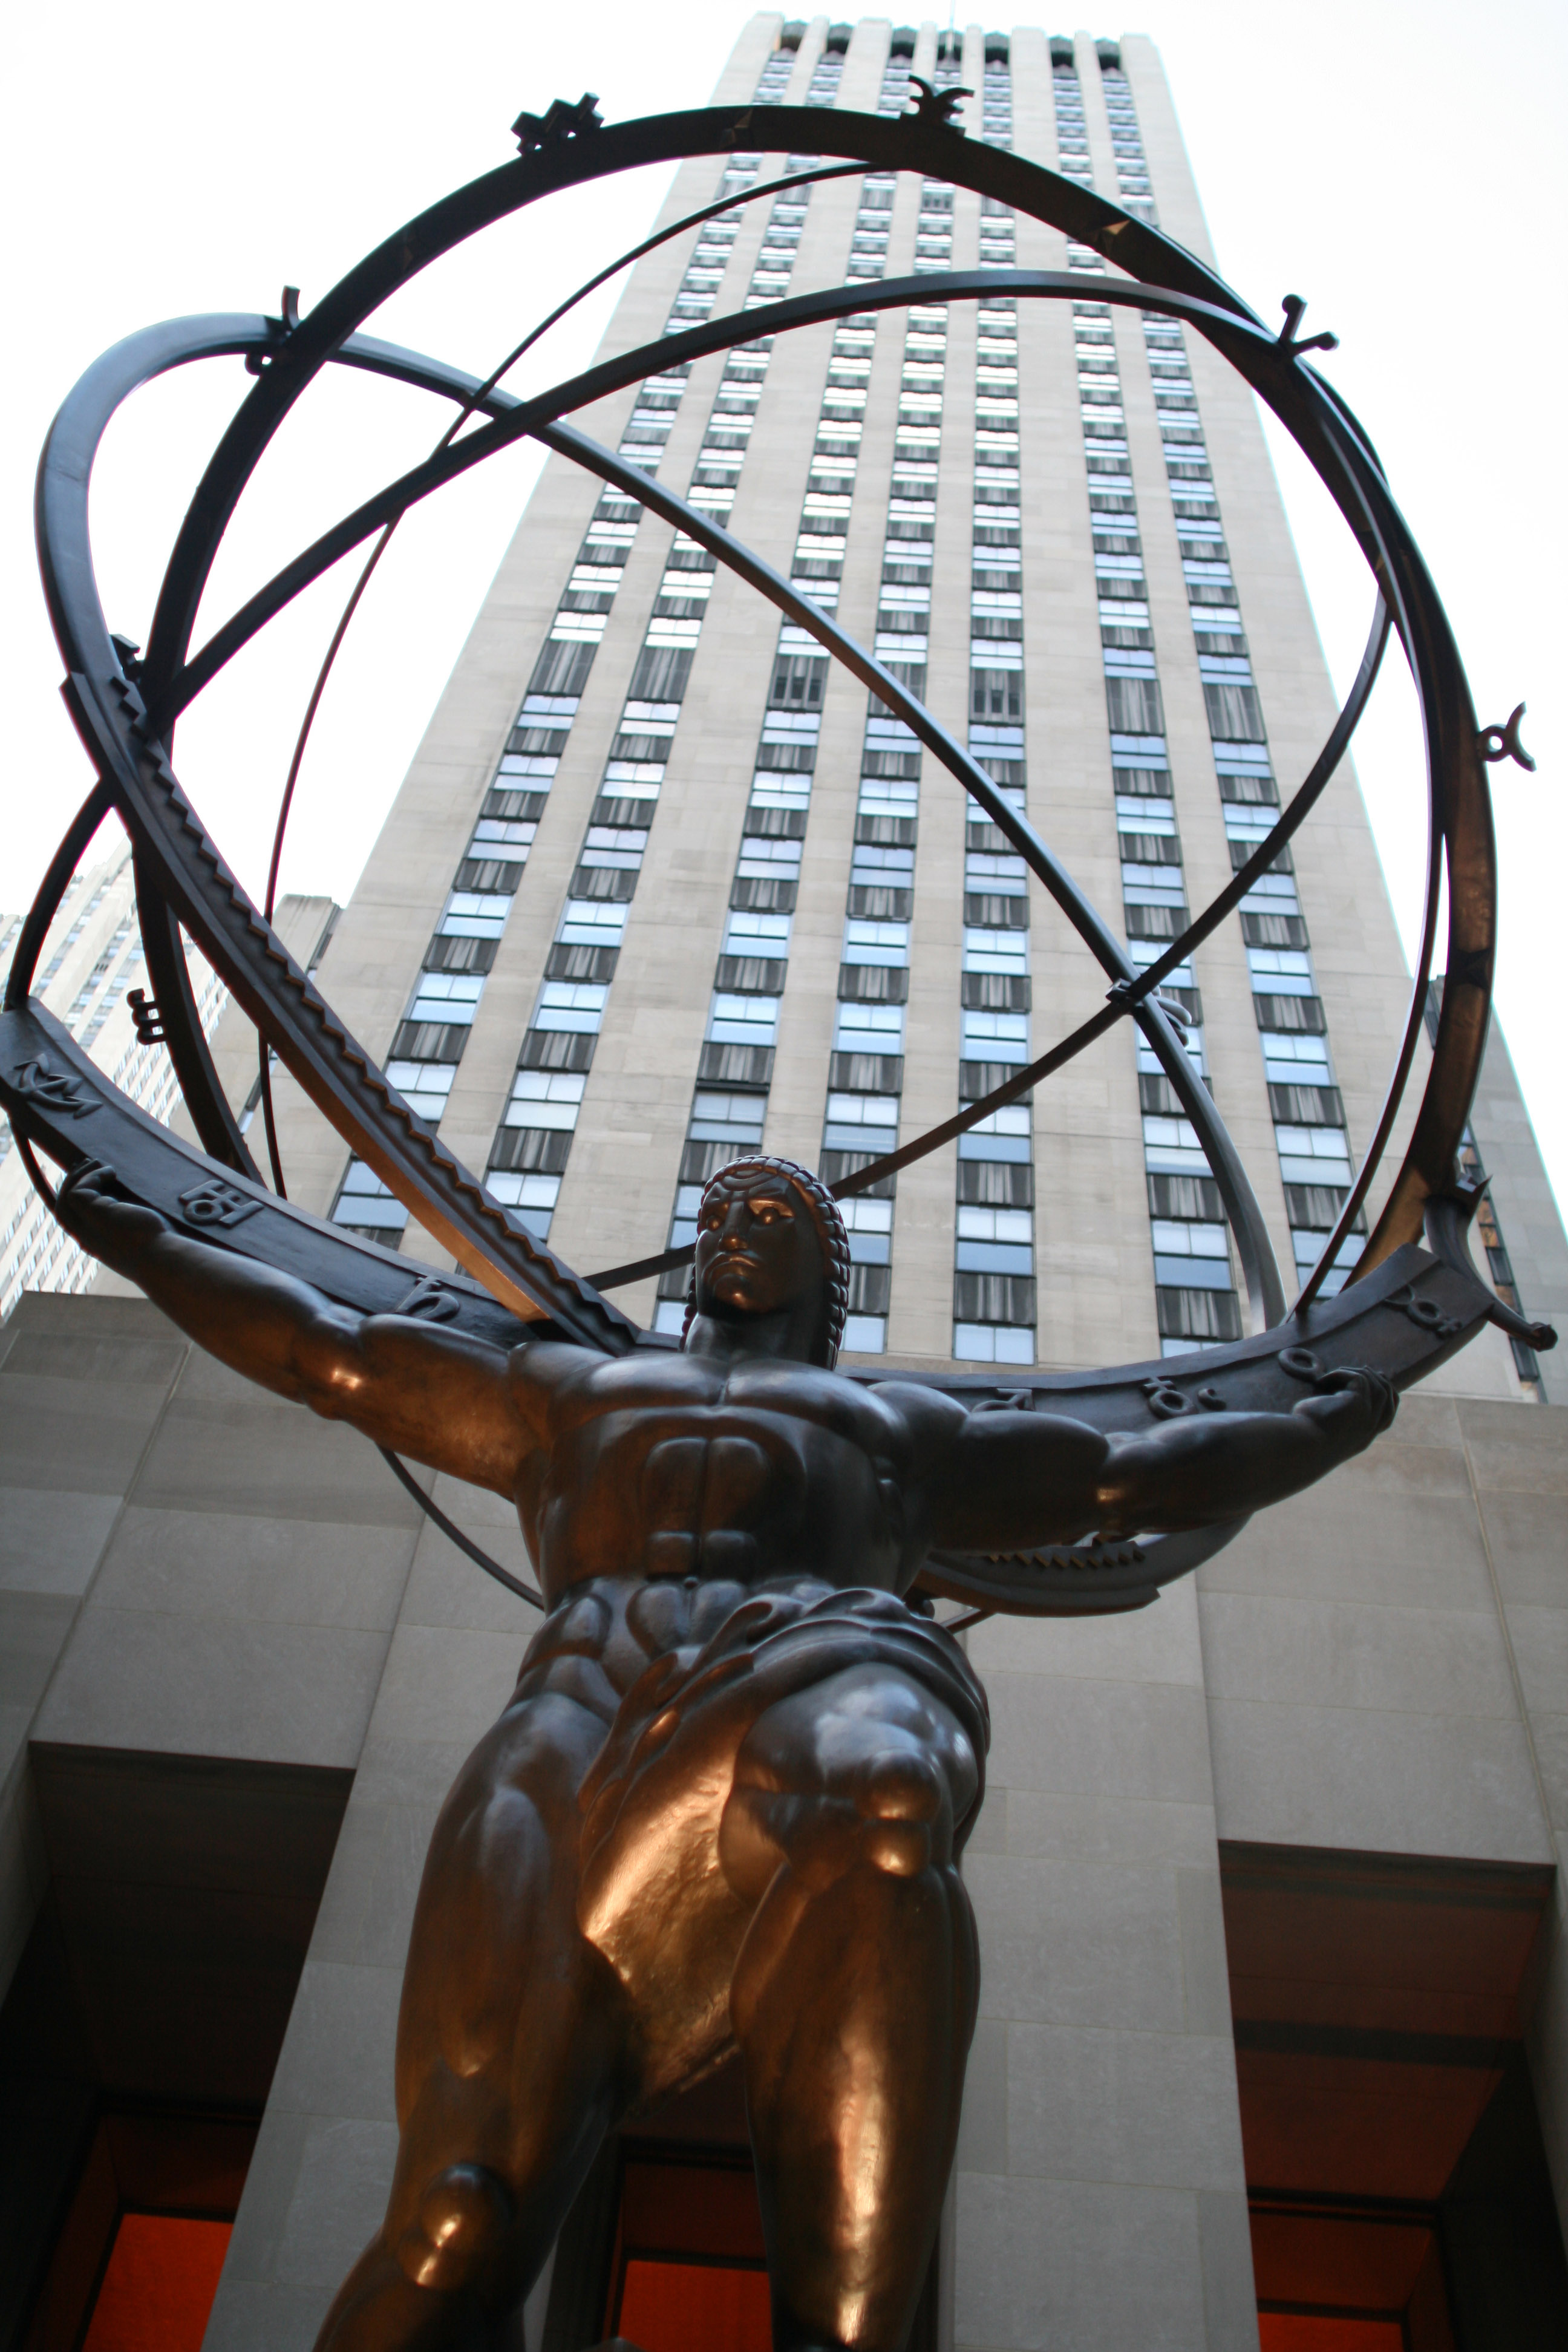 Lee Lawrie's bronze Atlas statue in Rockefeller Center